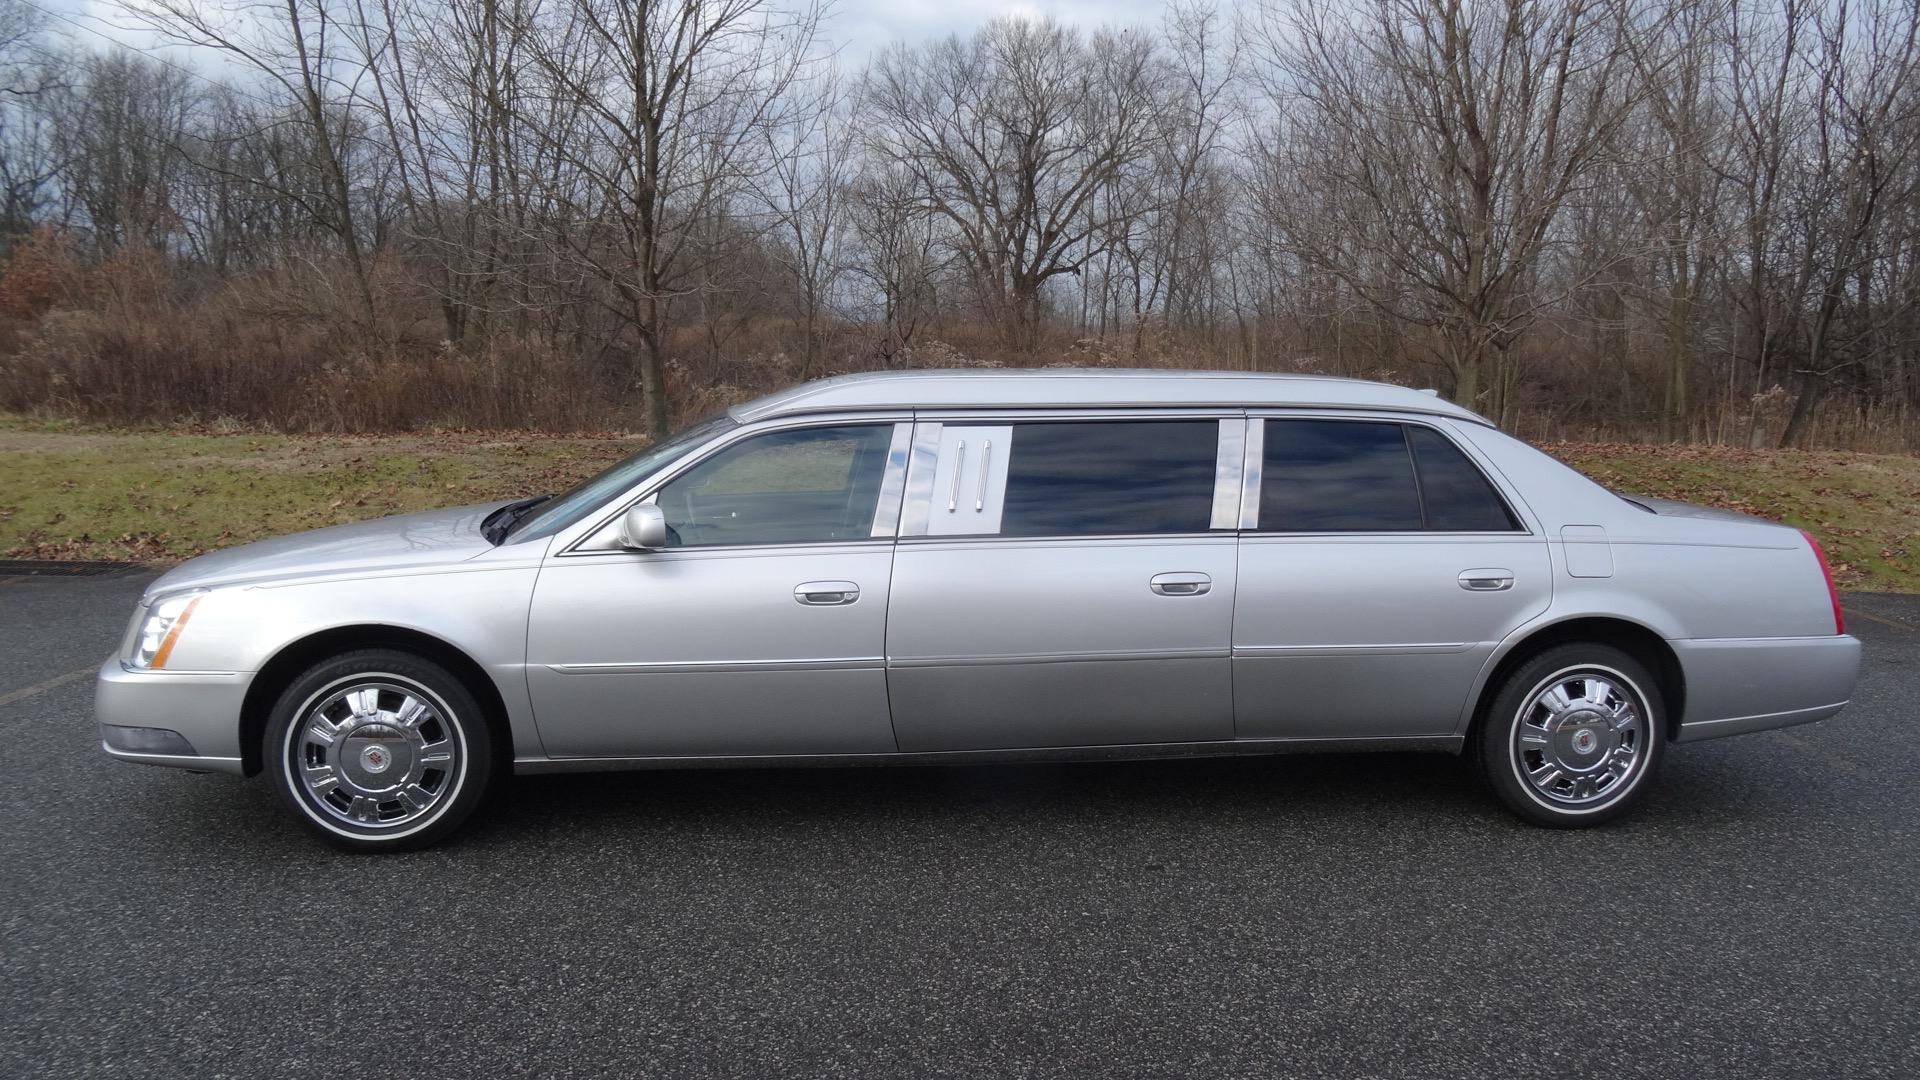 1997 CADILLAC FEDERAL LIMOUSINE